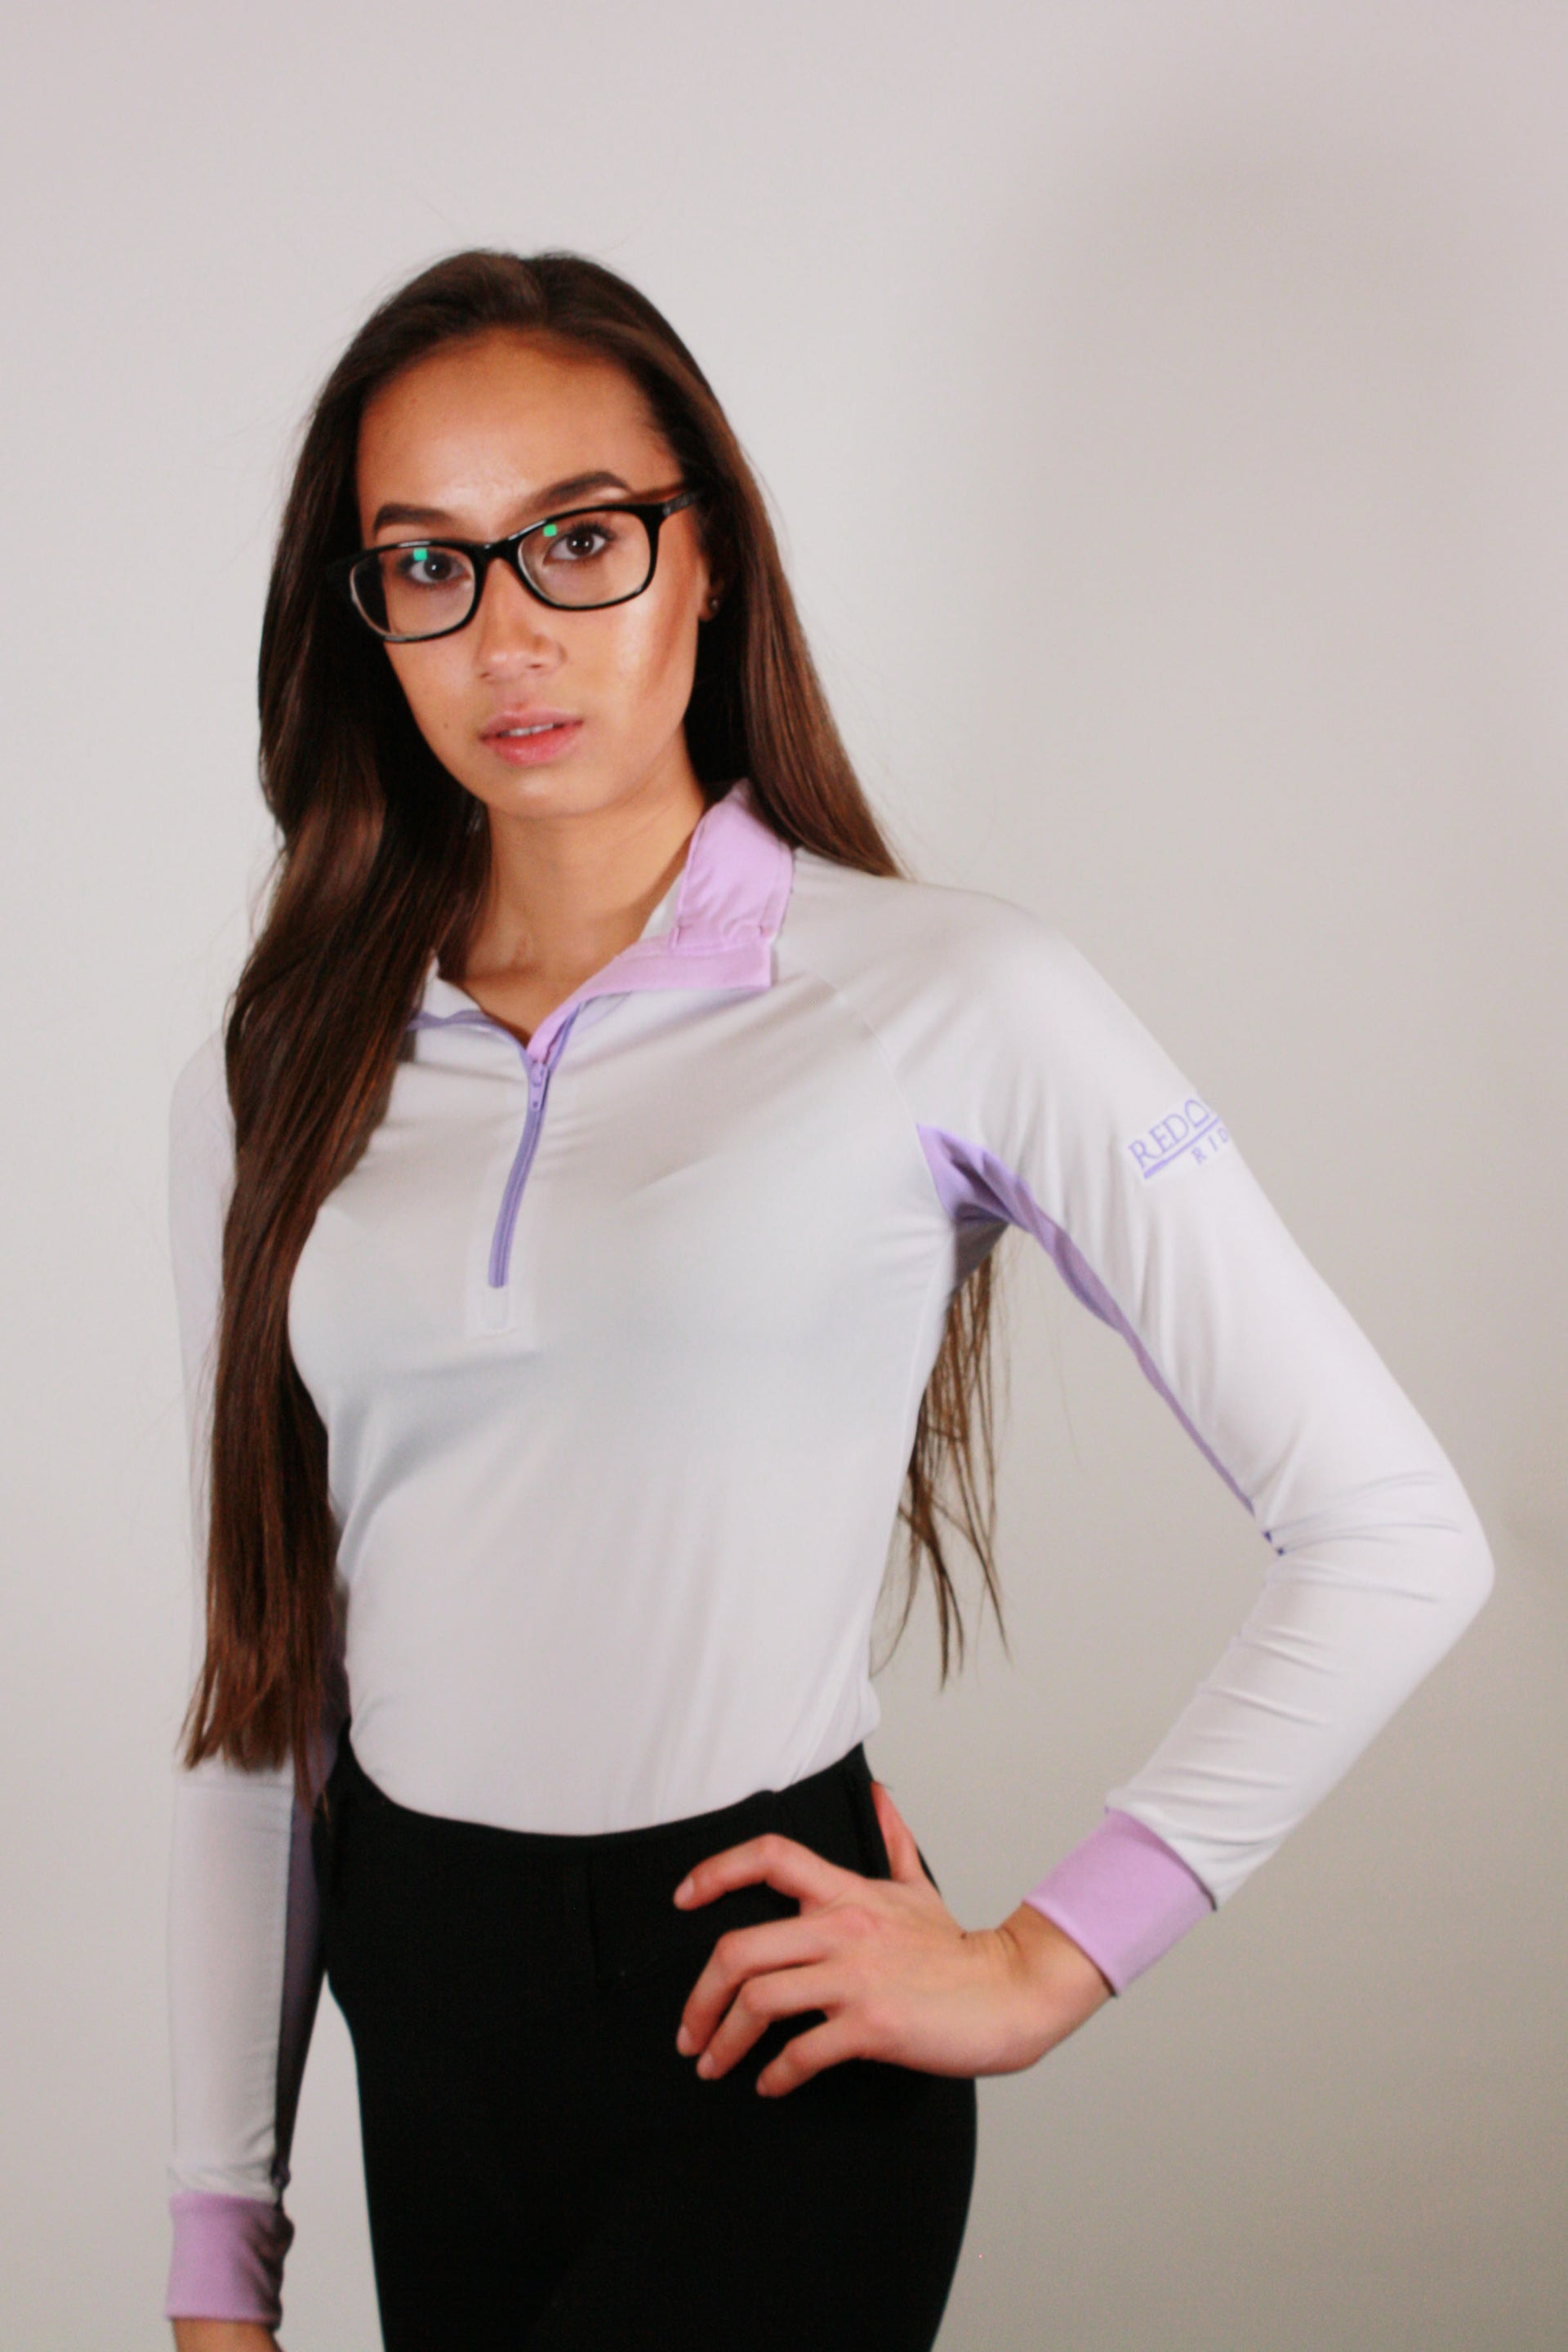 Technical Base Layer: White/Lilac